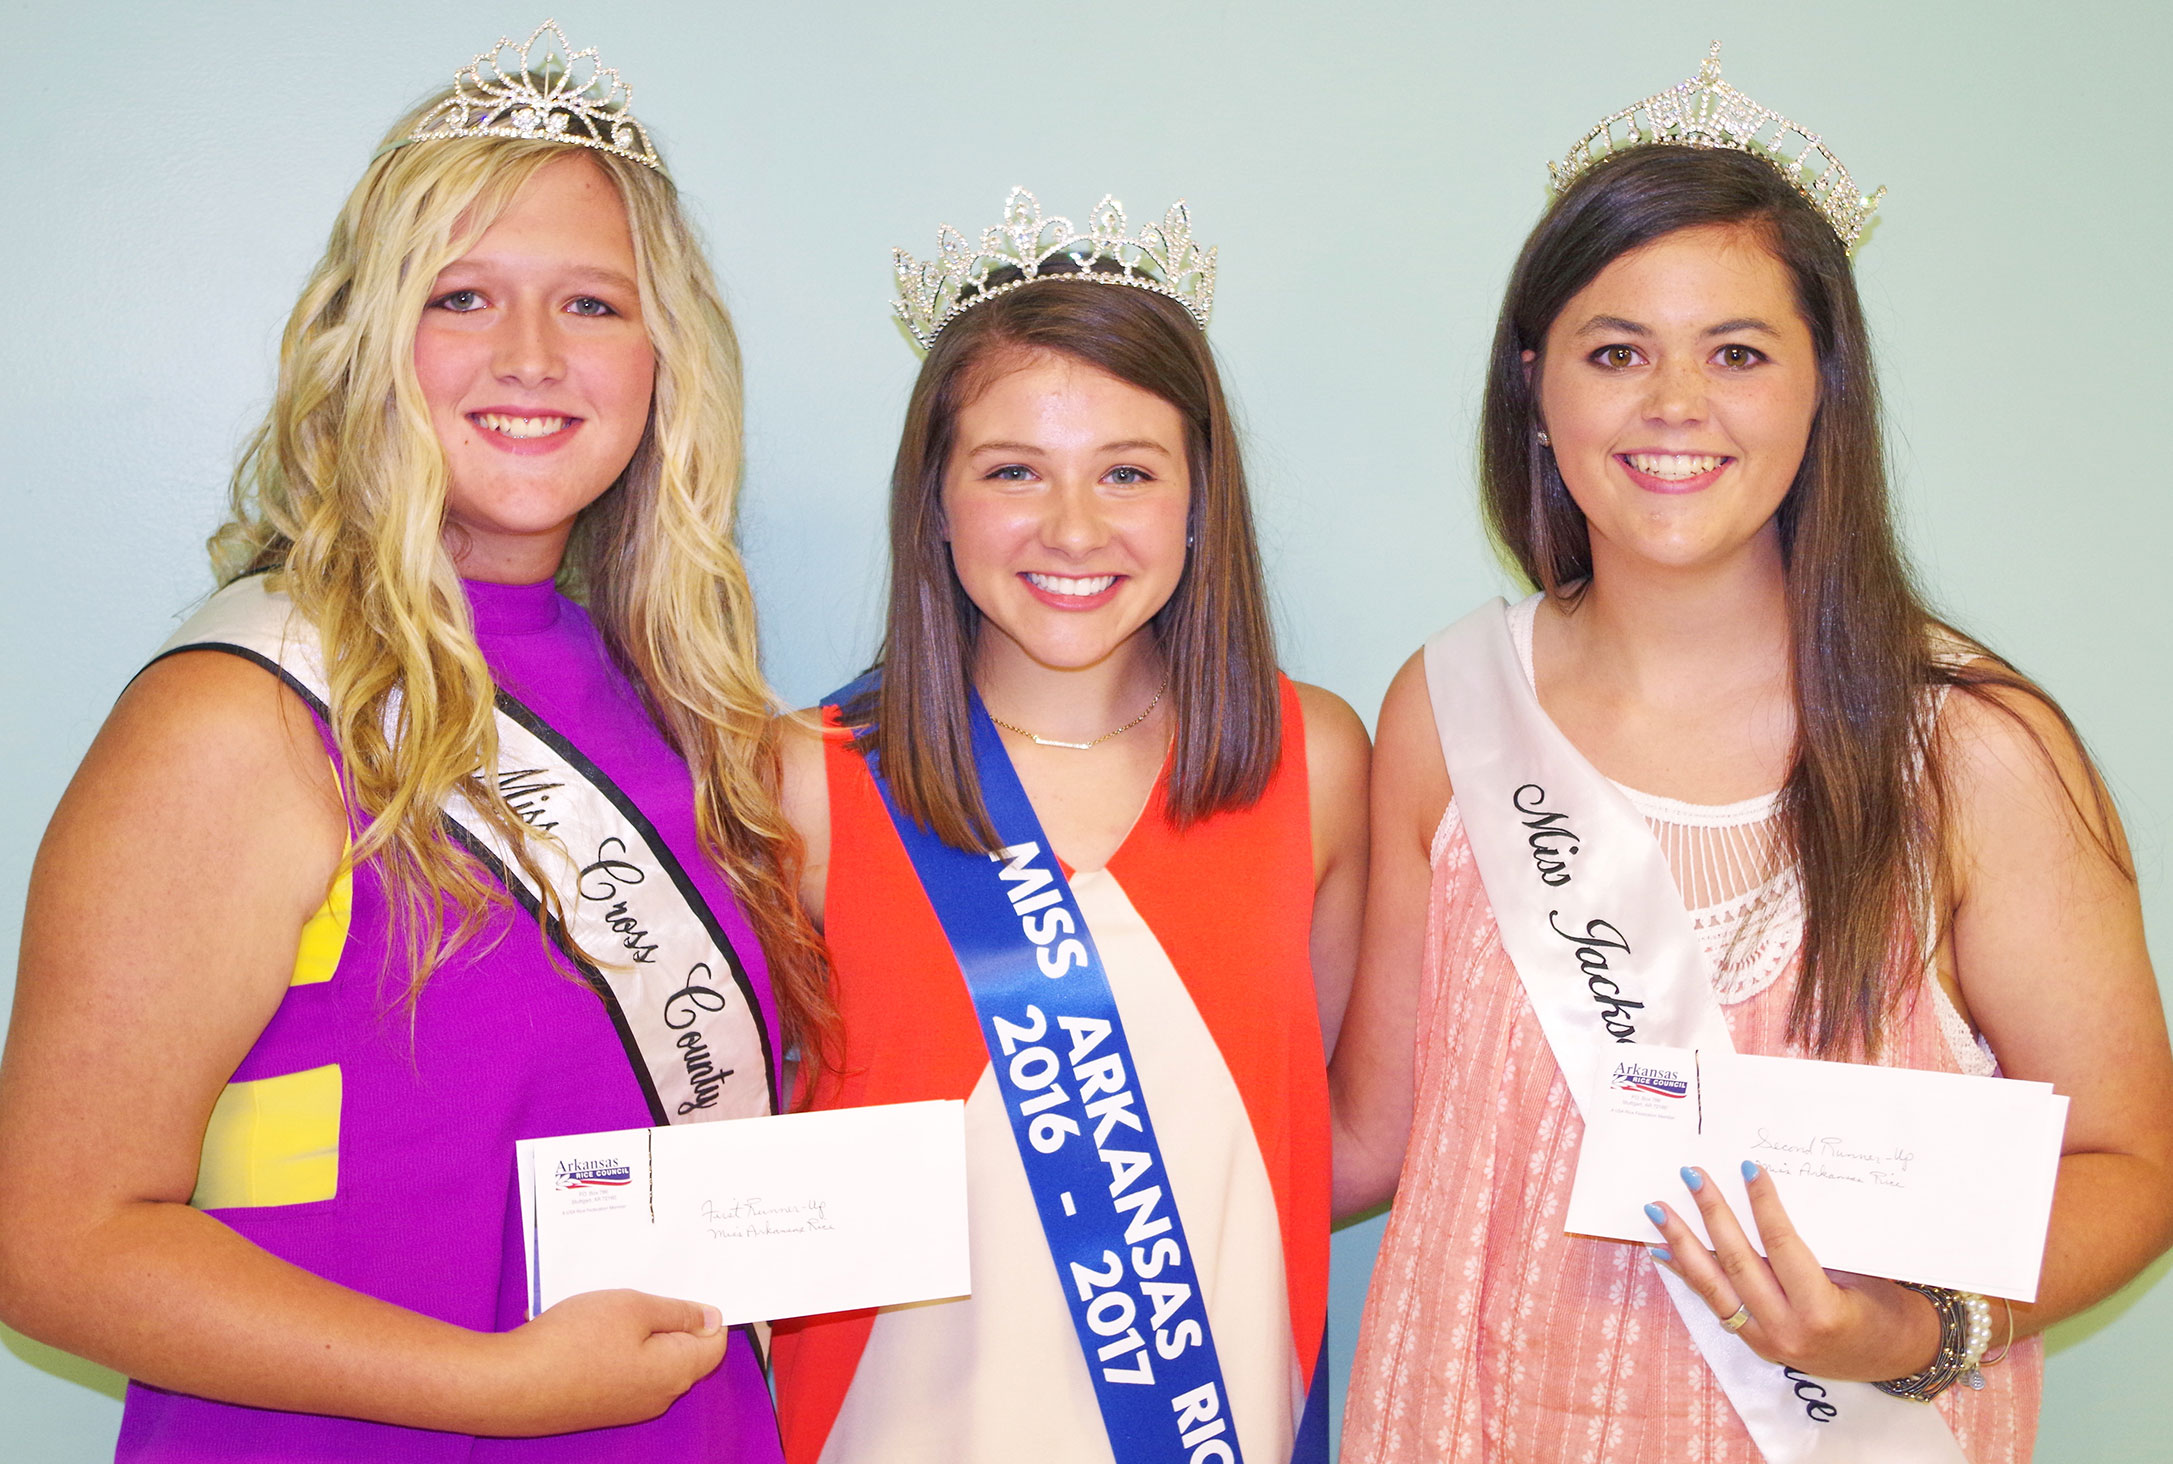 2016-17-Miss-AR-Rice-Top-3-Winners, 3 young ladies wearing sashes & tiaras